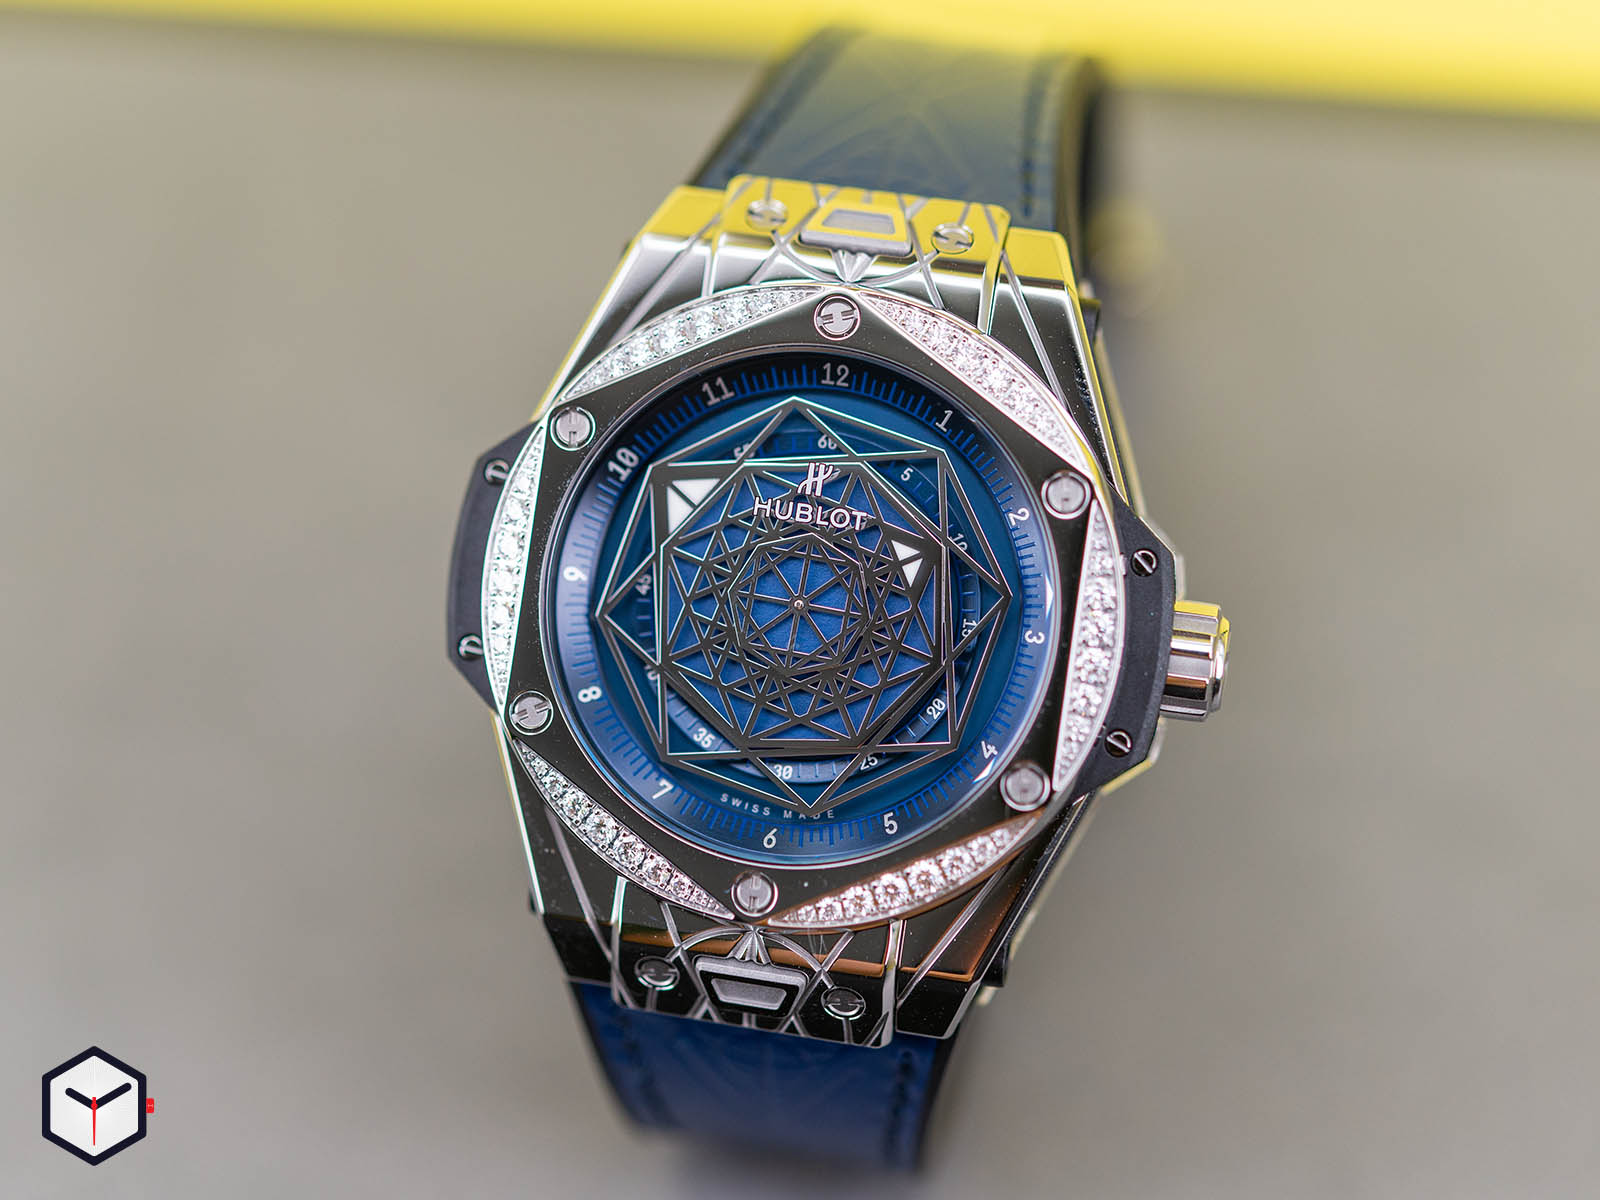 465-ss-7179-vr-1204-mxm19-hublot-big-bang-sang-bleu-steel-blue-diamonds-2.jpg